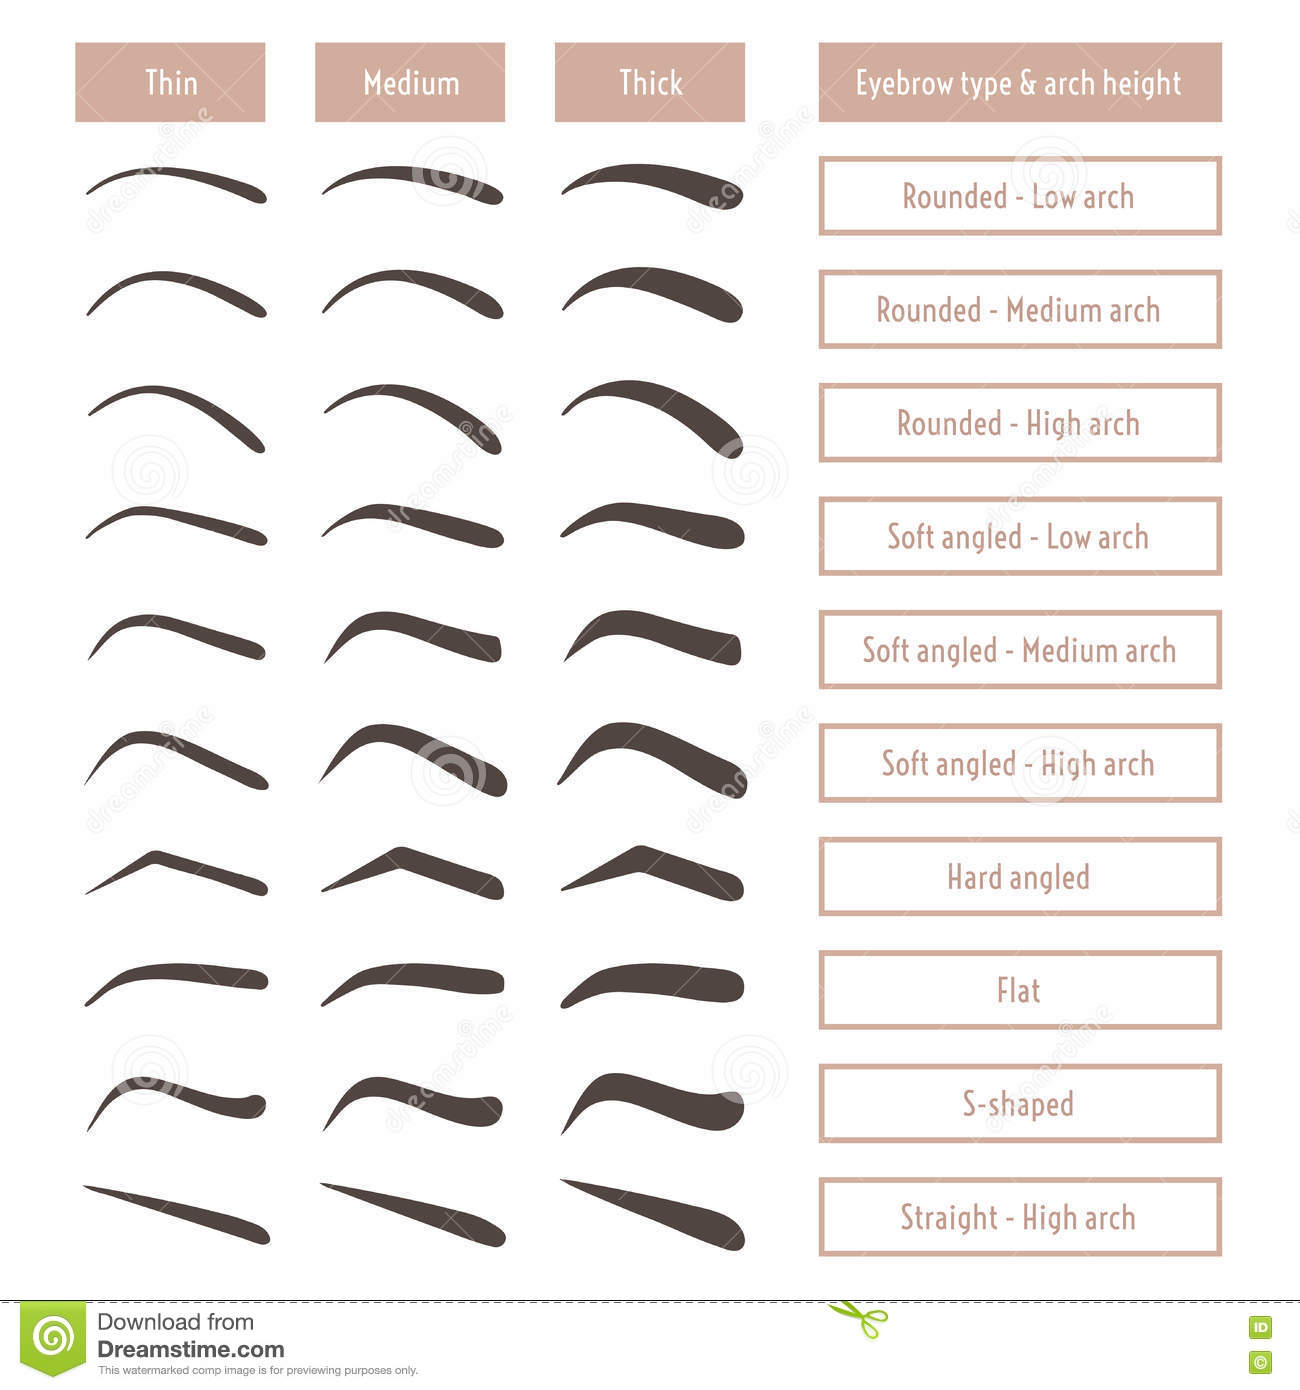 Classic Table Shapes Eyebrow Shapes Various Brow Types Vector Table With Eyebrows And